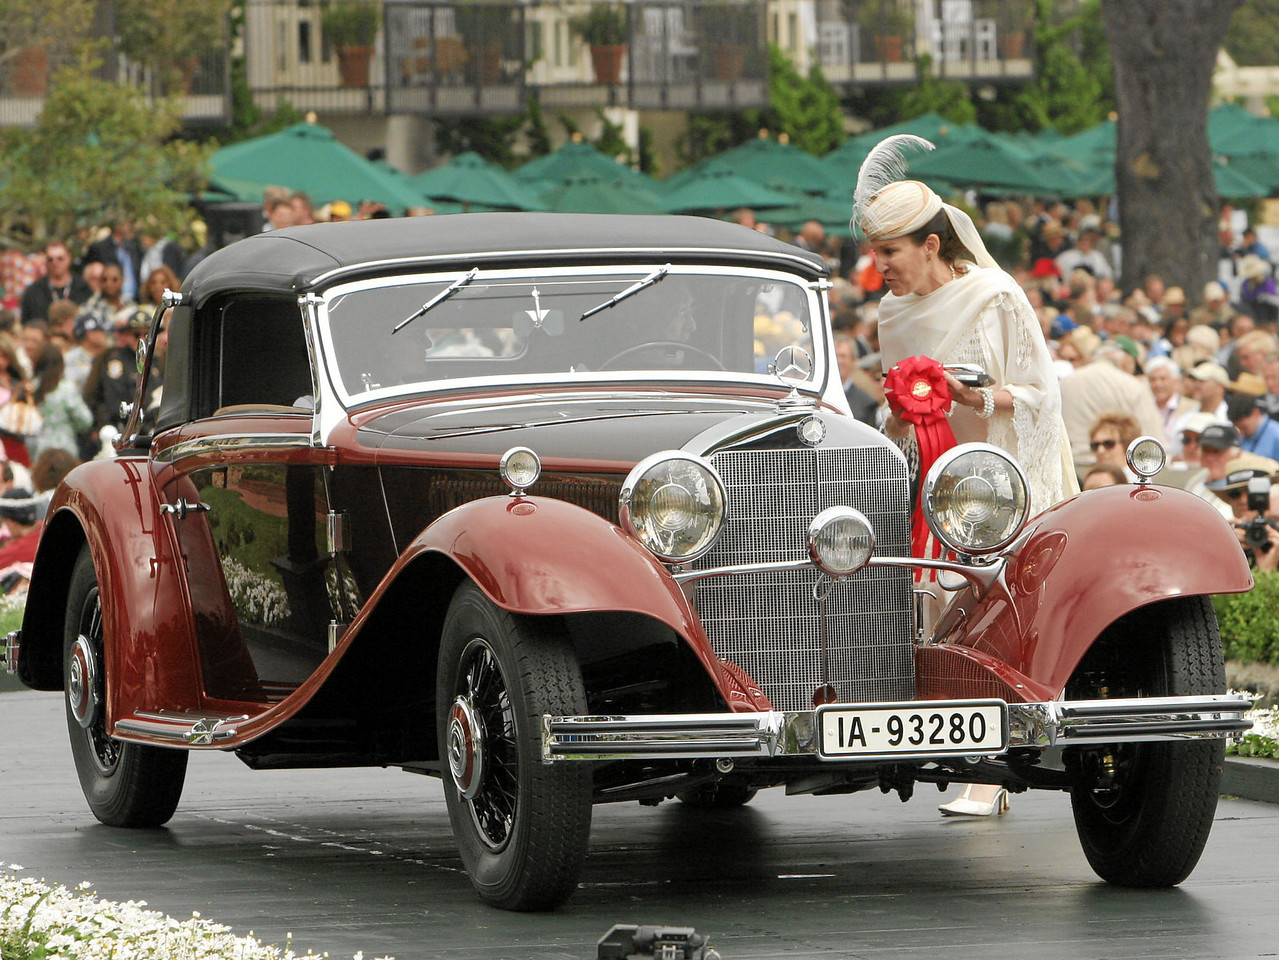 1934 Mercedes-Benz 380 Cabriolet A owned by Wolfgang Grodd from Queensland, Australia 2nd Class I (Mercedes-Benz Prewar)